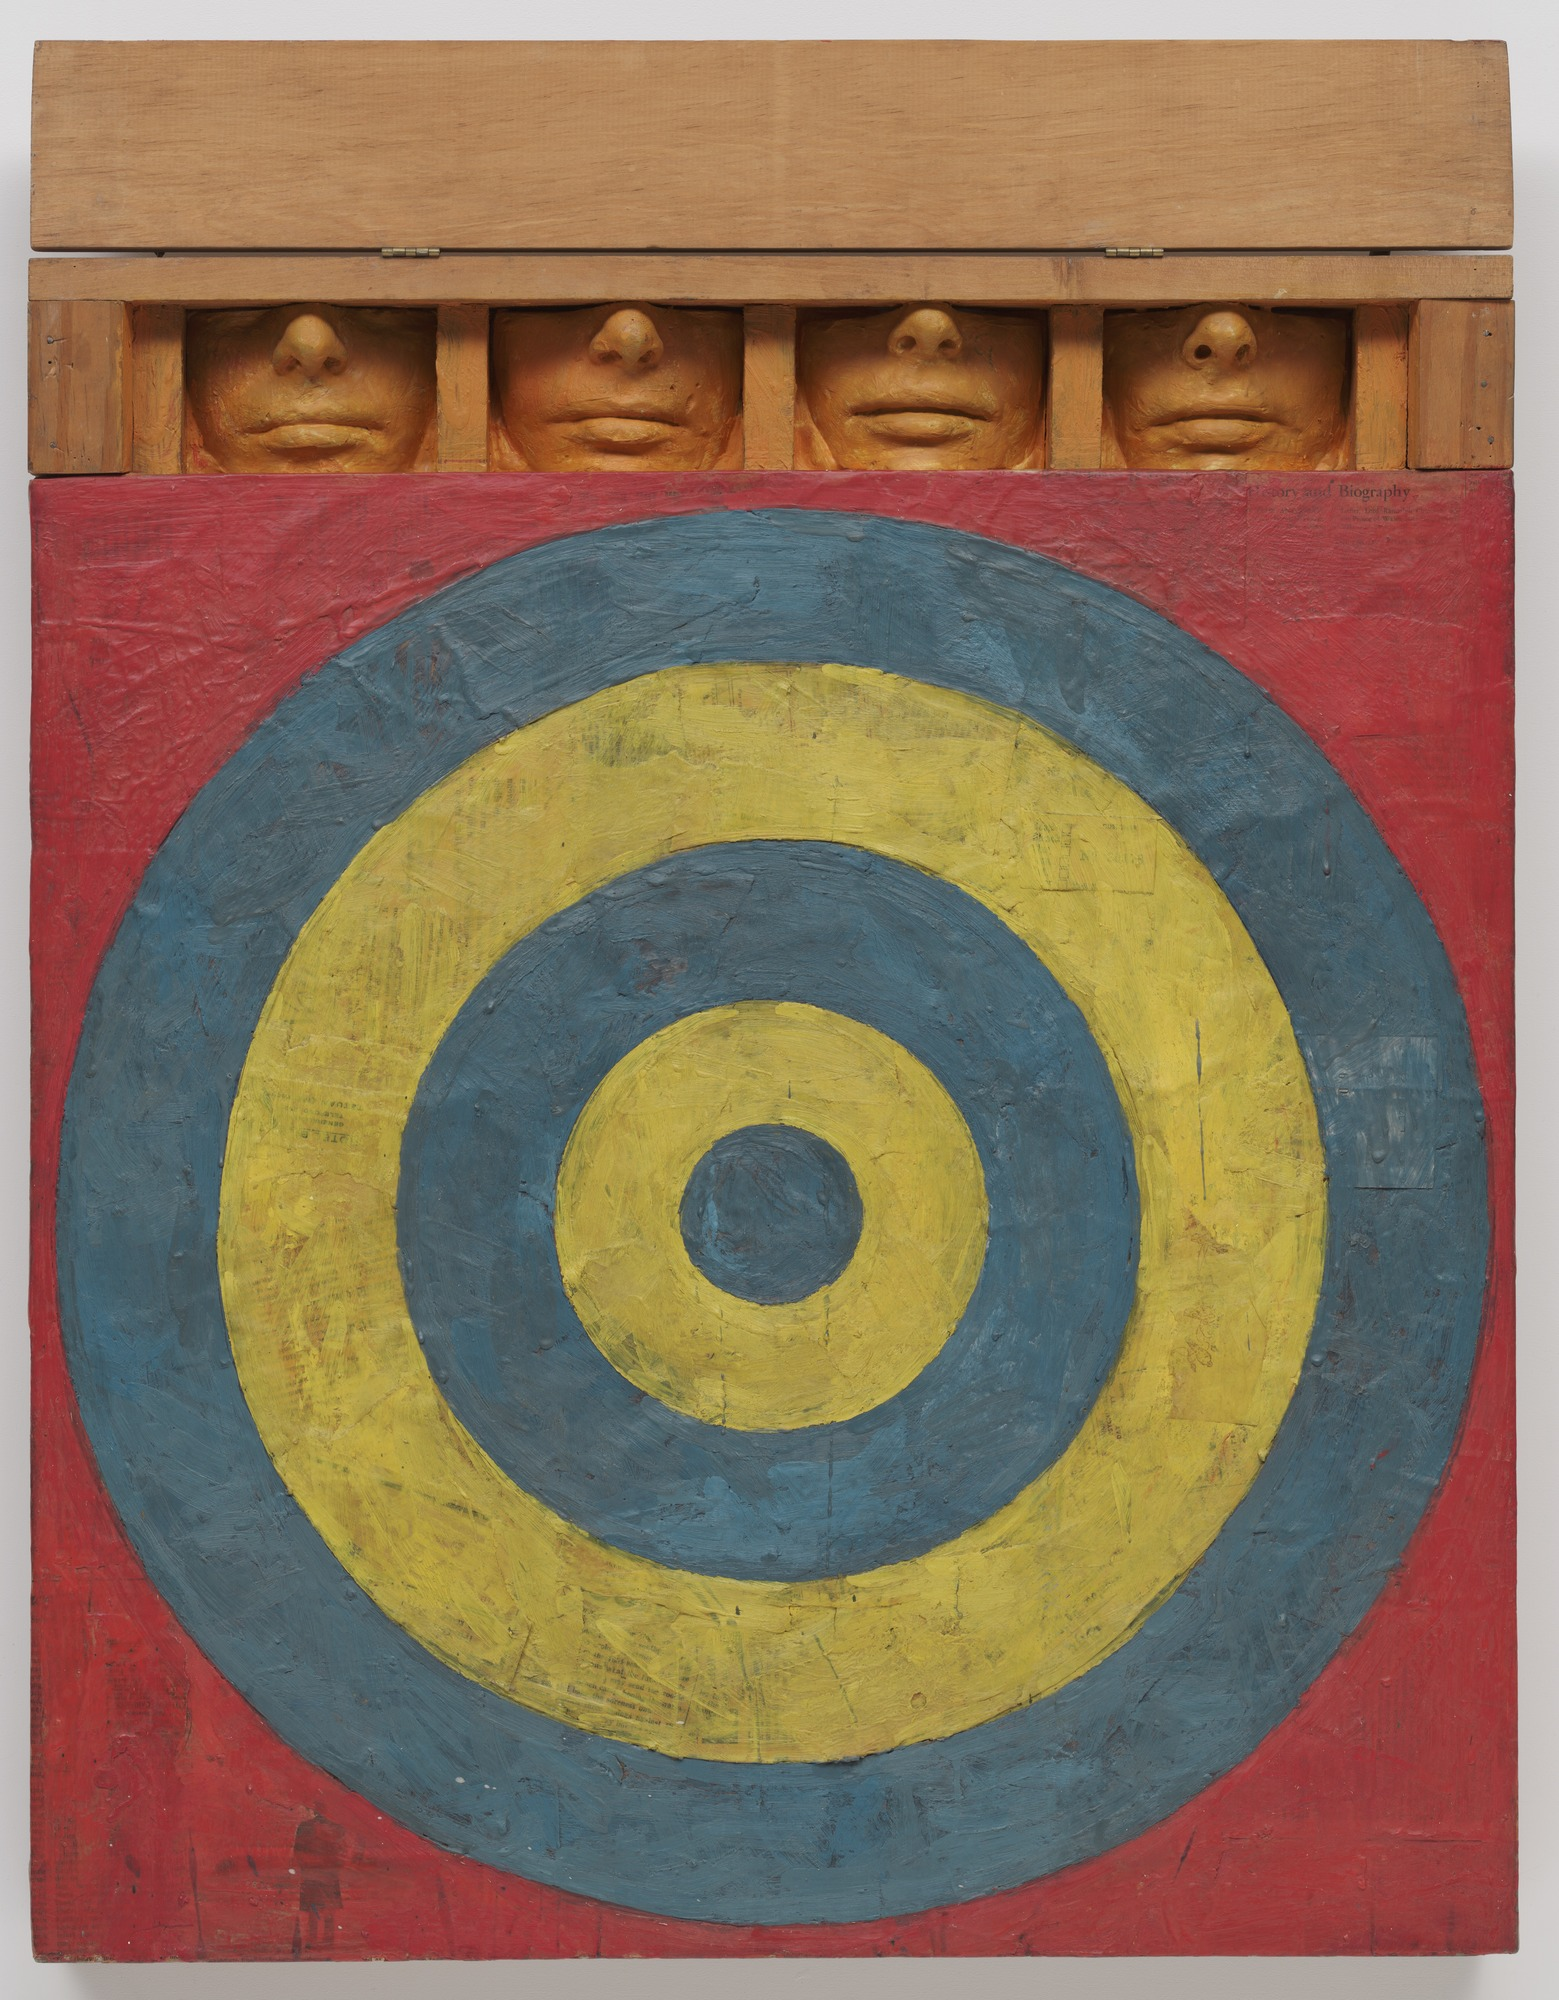 Jasper Johns - Target with Four Faces.jpg